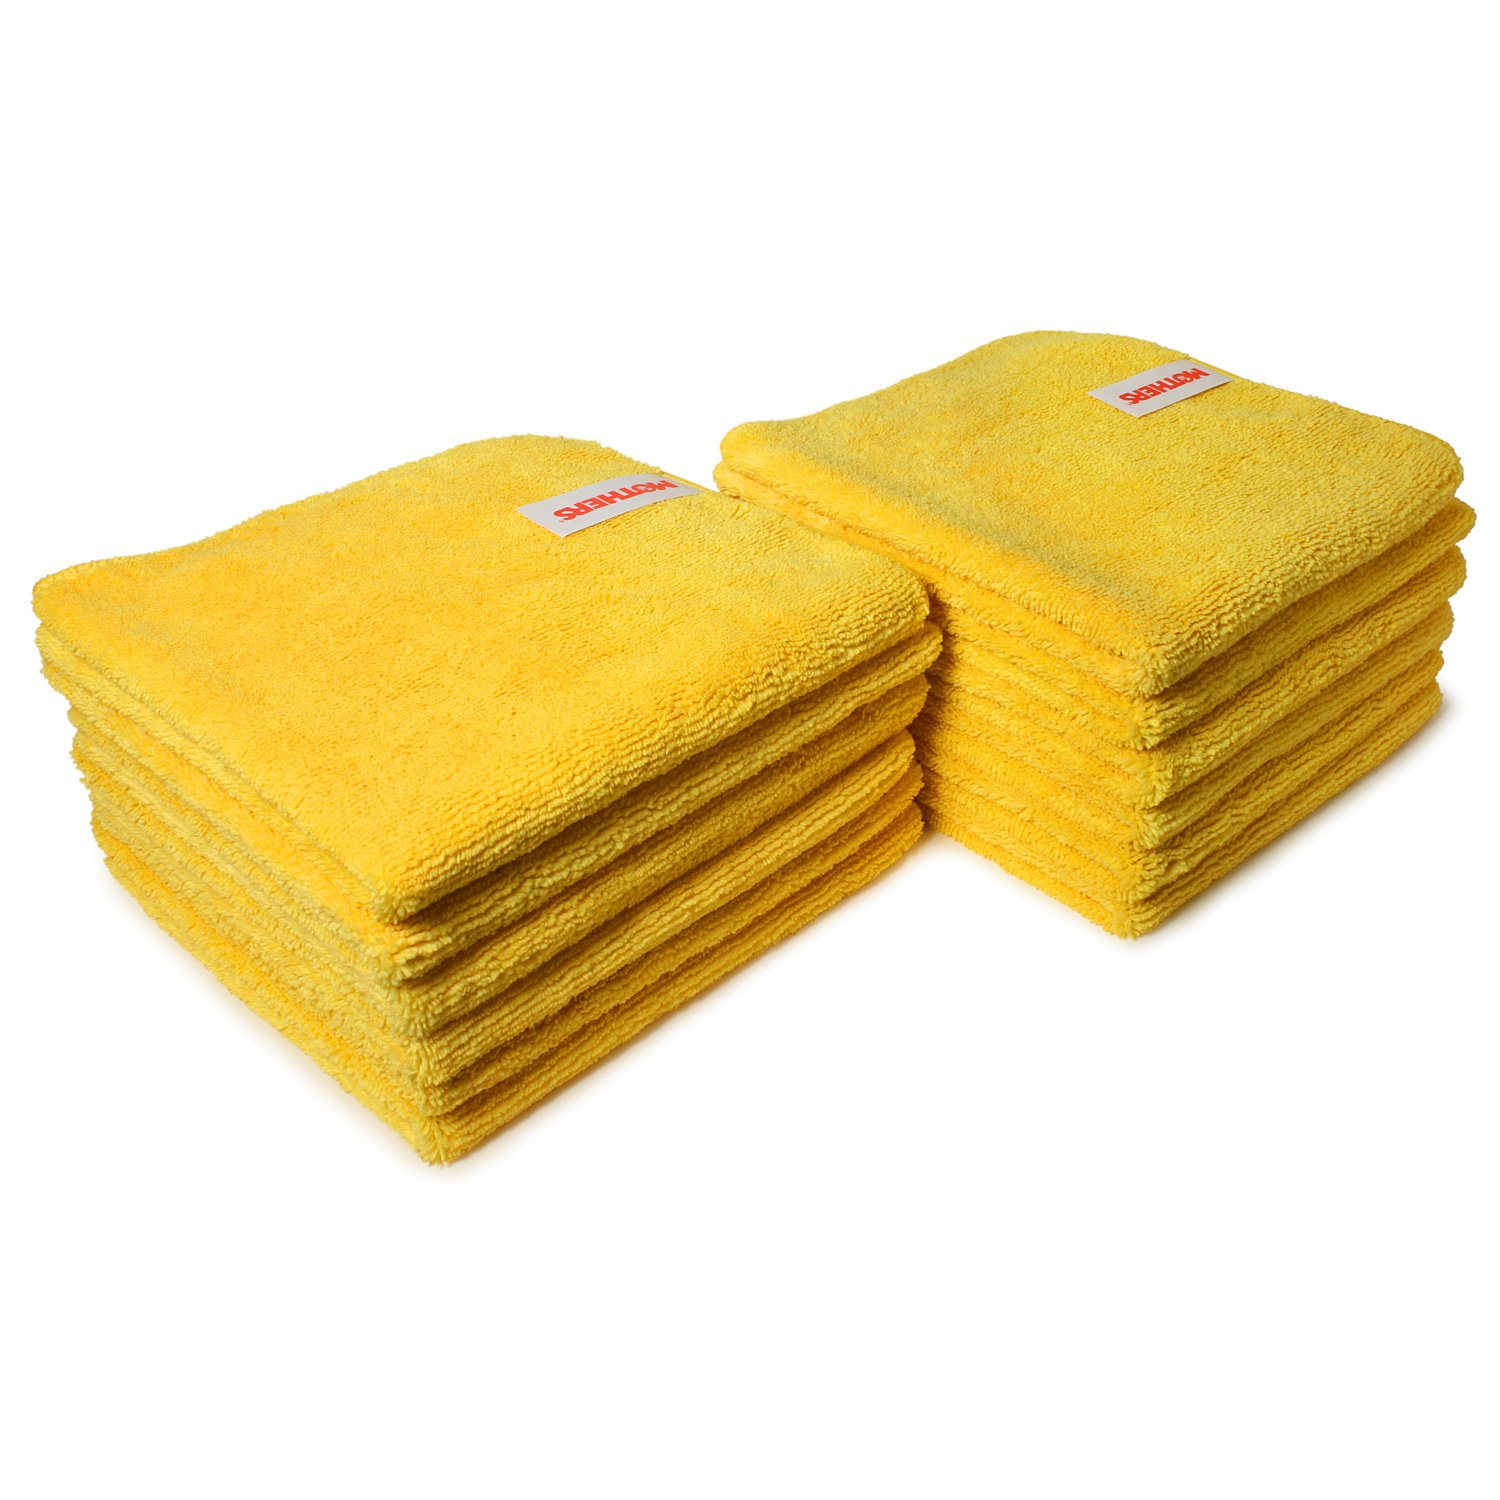 Mothers 90-90004 Professional Grade Premium Microfiber Towels, Gold, (Pack of 144) by Mothers